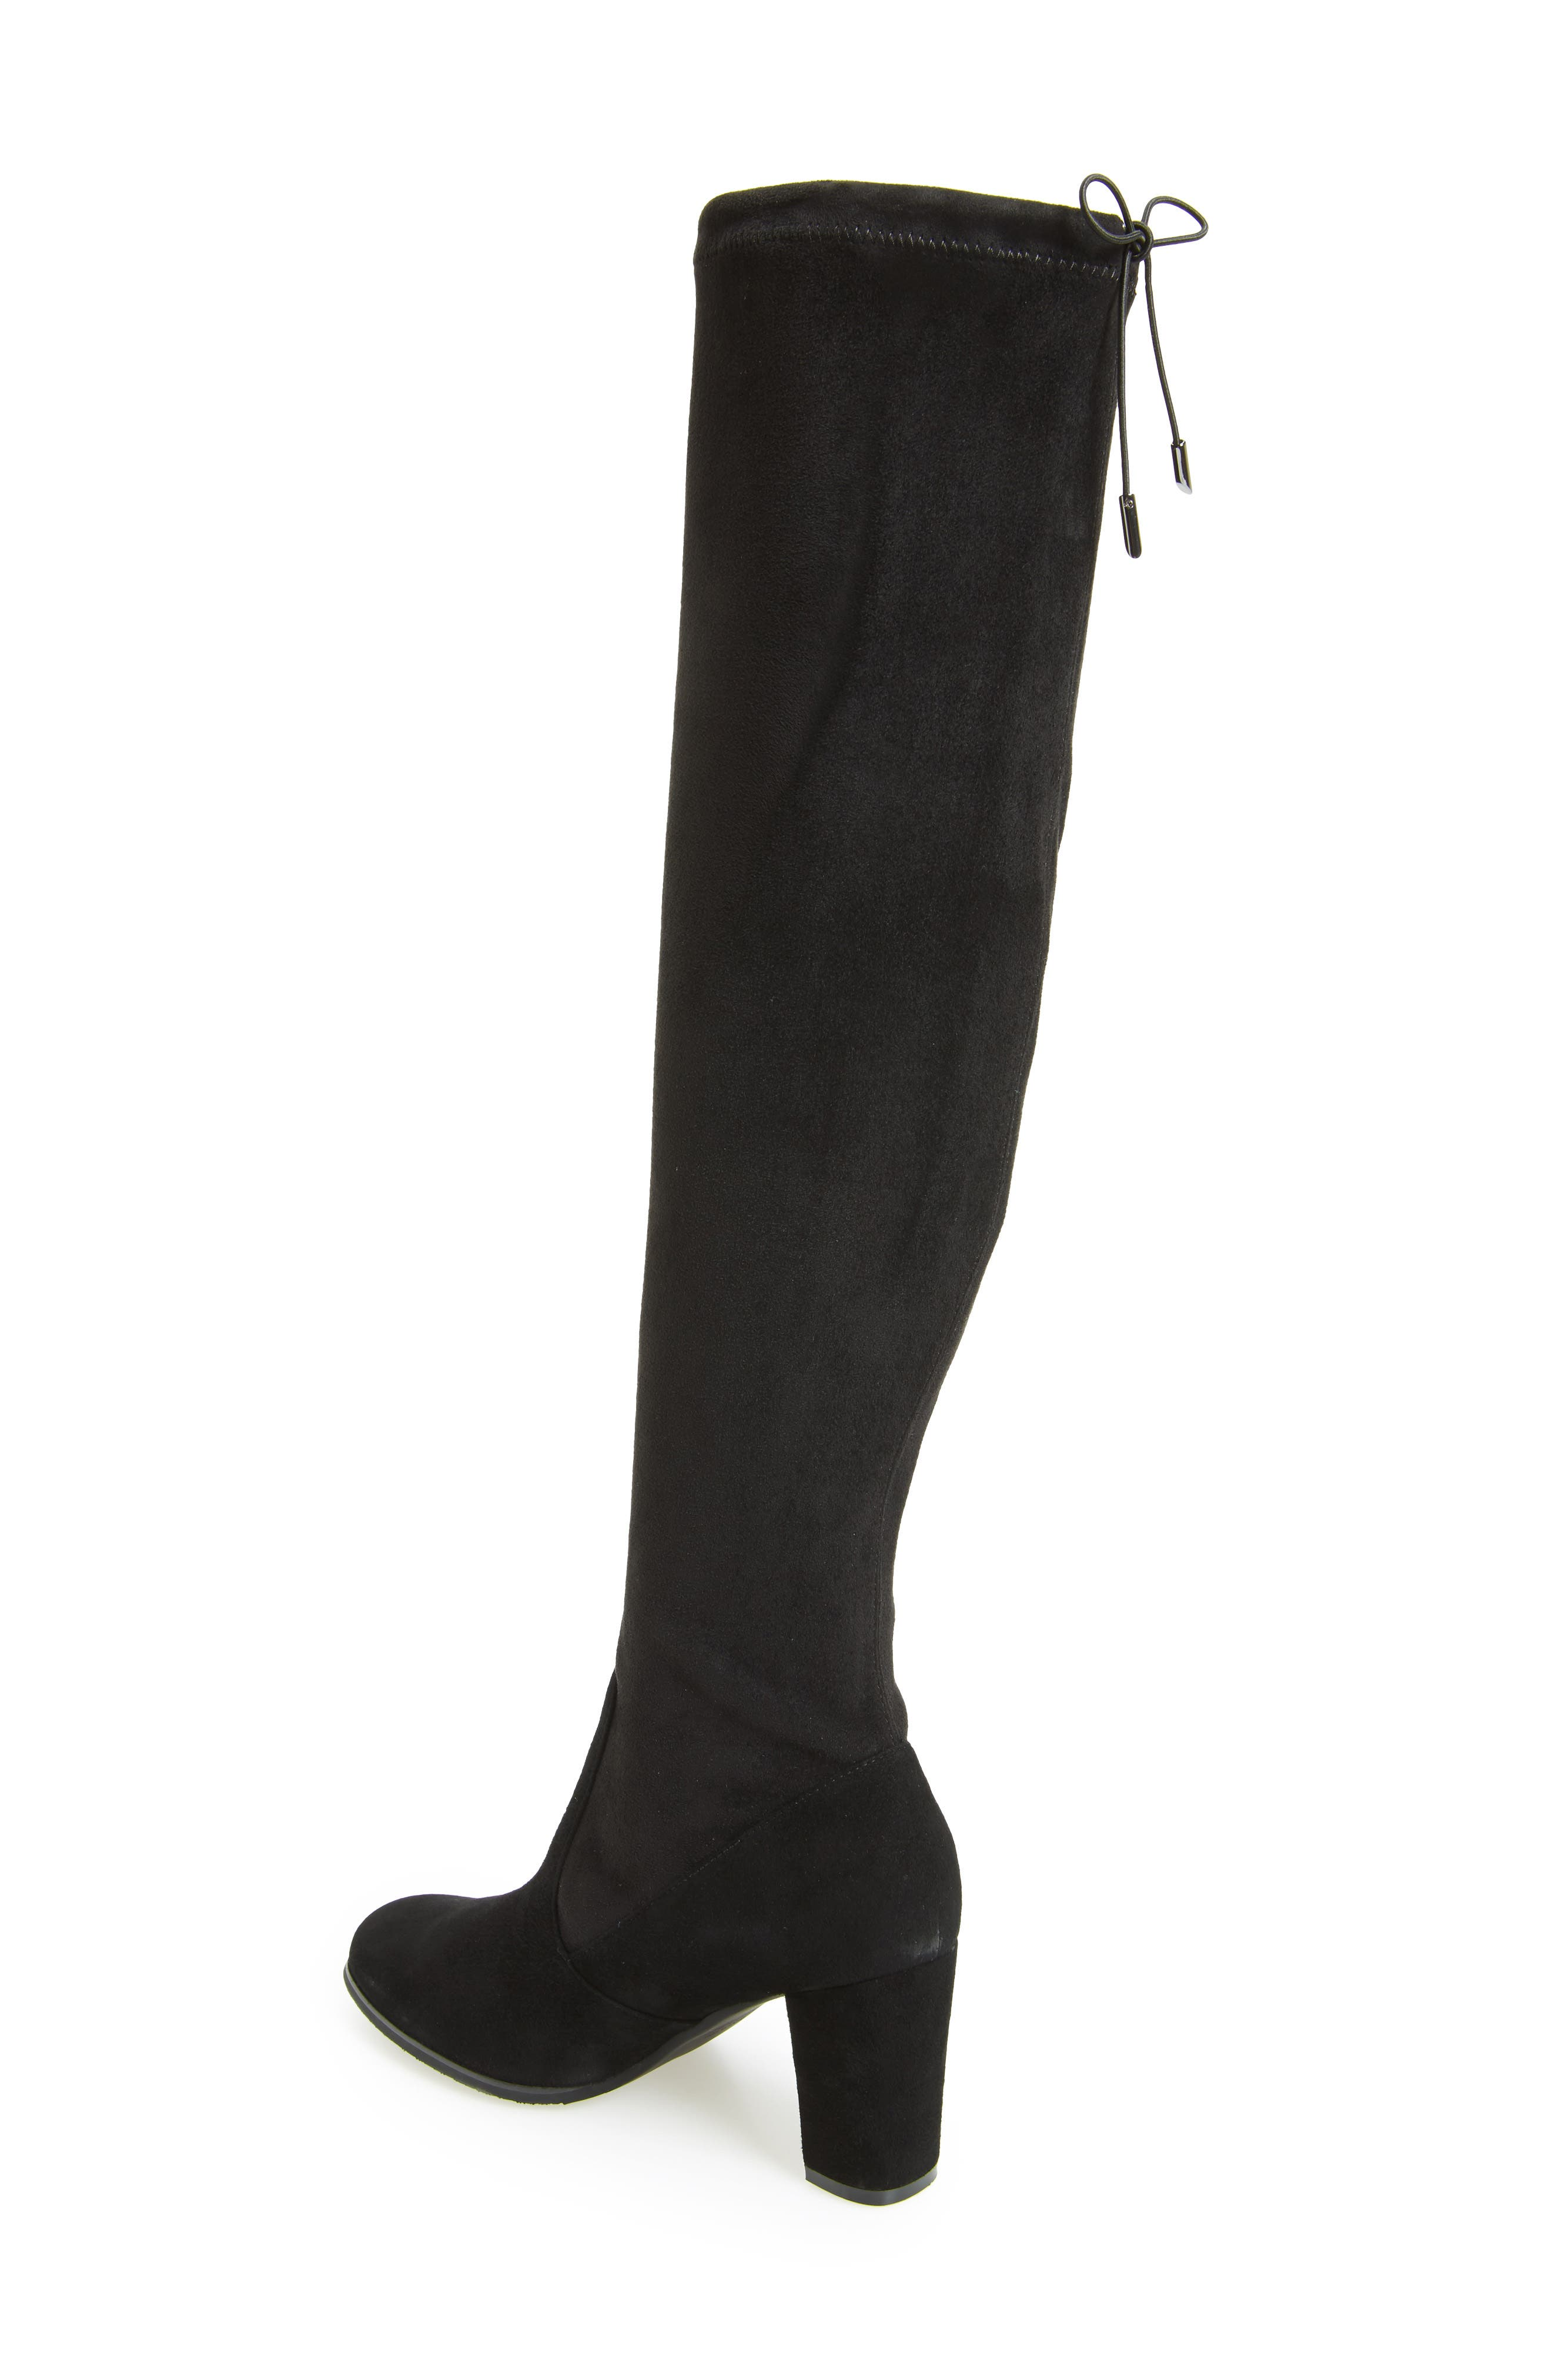 Kali Waterproof Over the Knee Boot,                             Alternate thumbnail 2, color,                             BLACK SUEDE